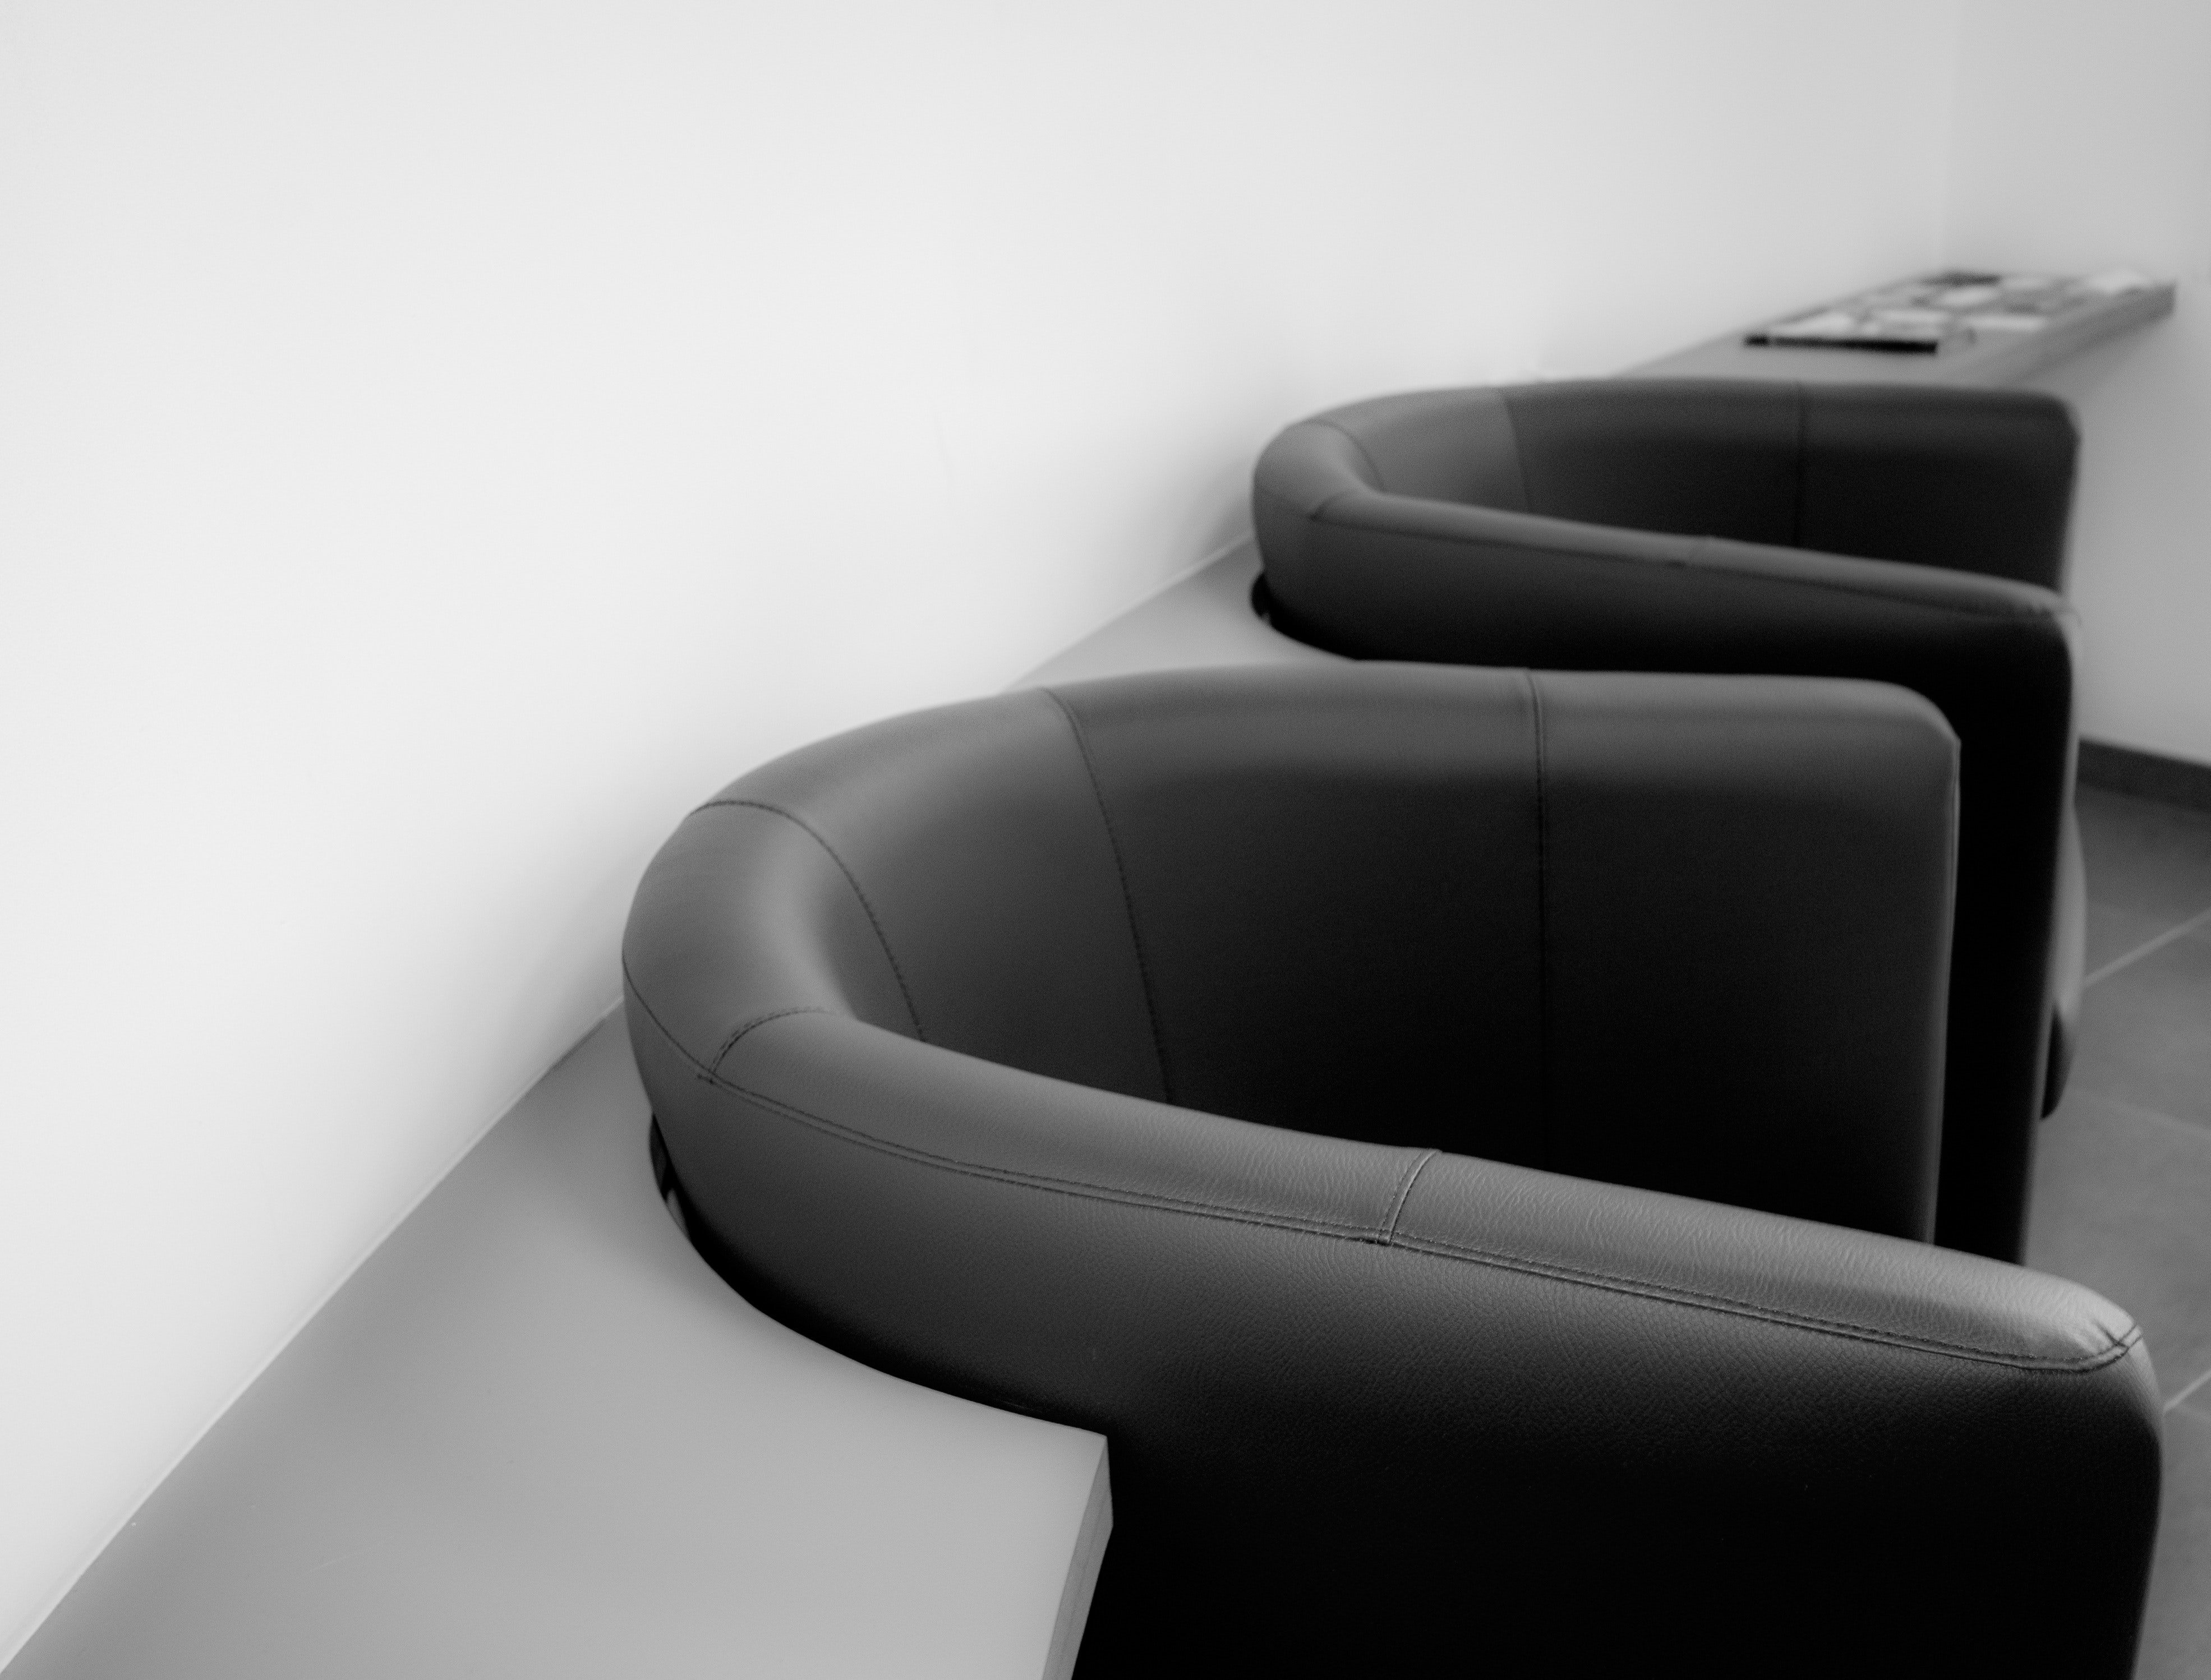 armchairs-black-and-white-chairs-271744